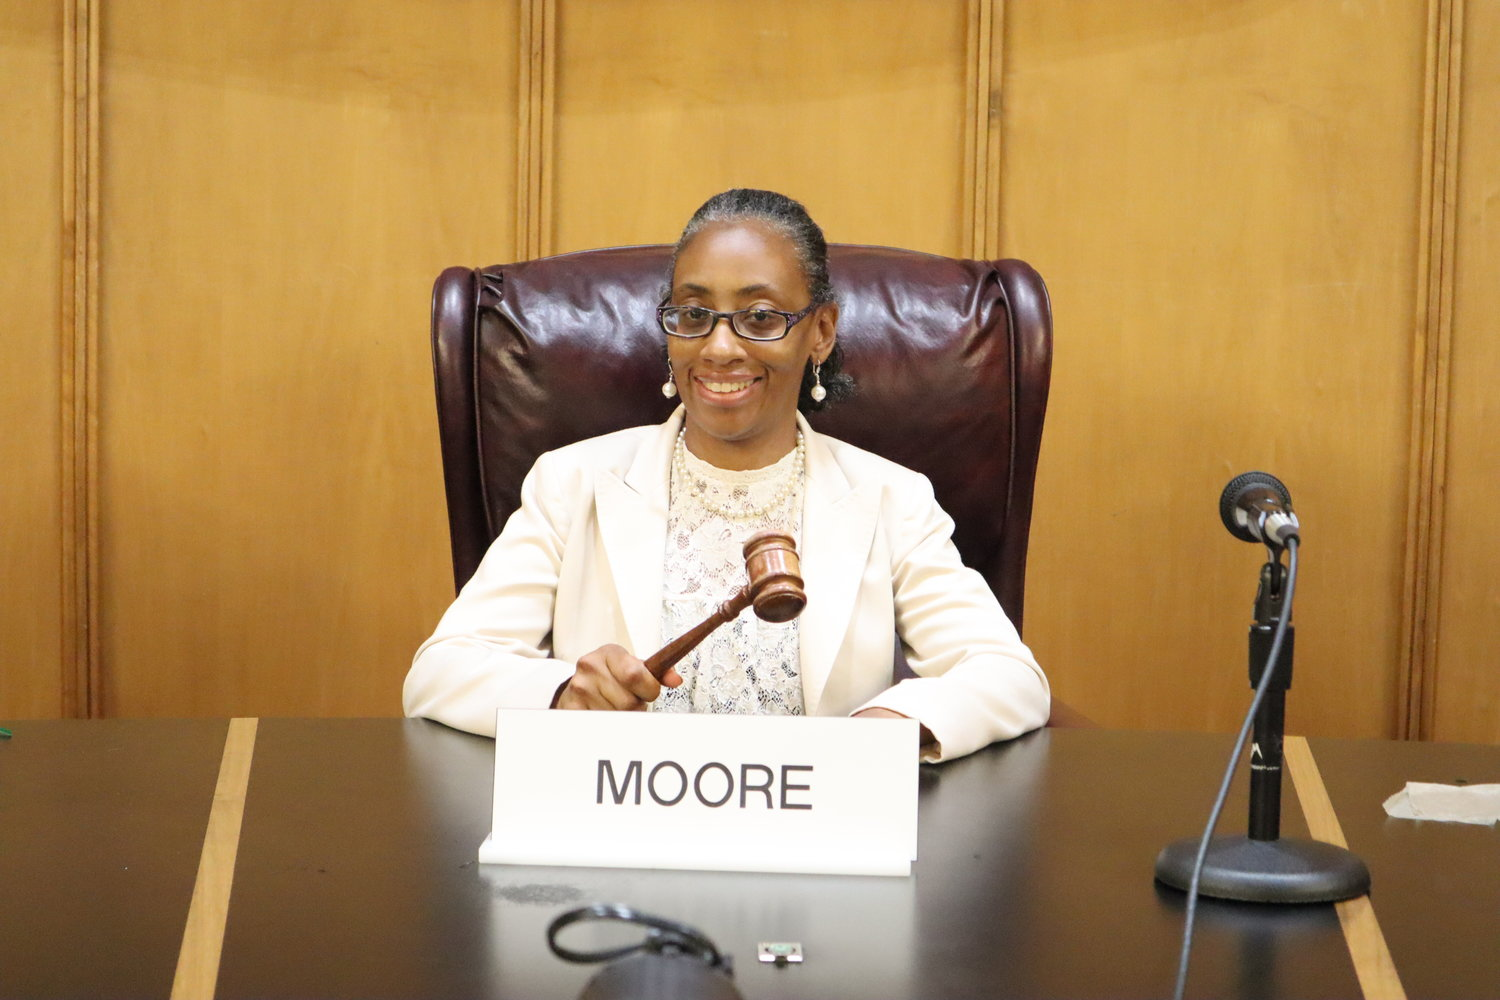 Anissa Moore was elected as president of the City Council on August 6.